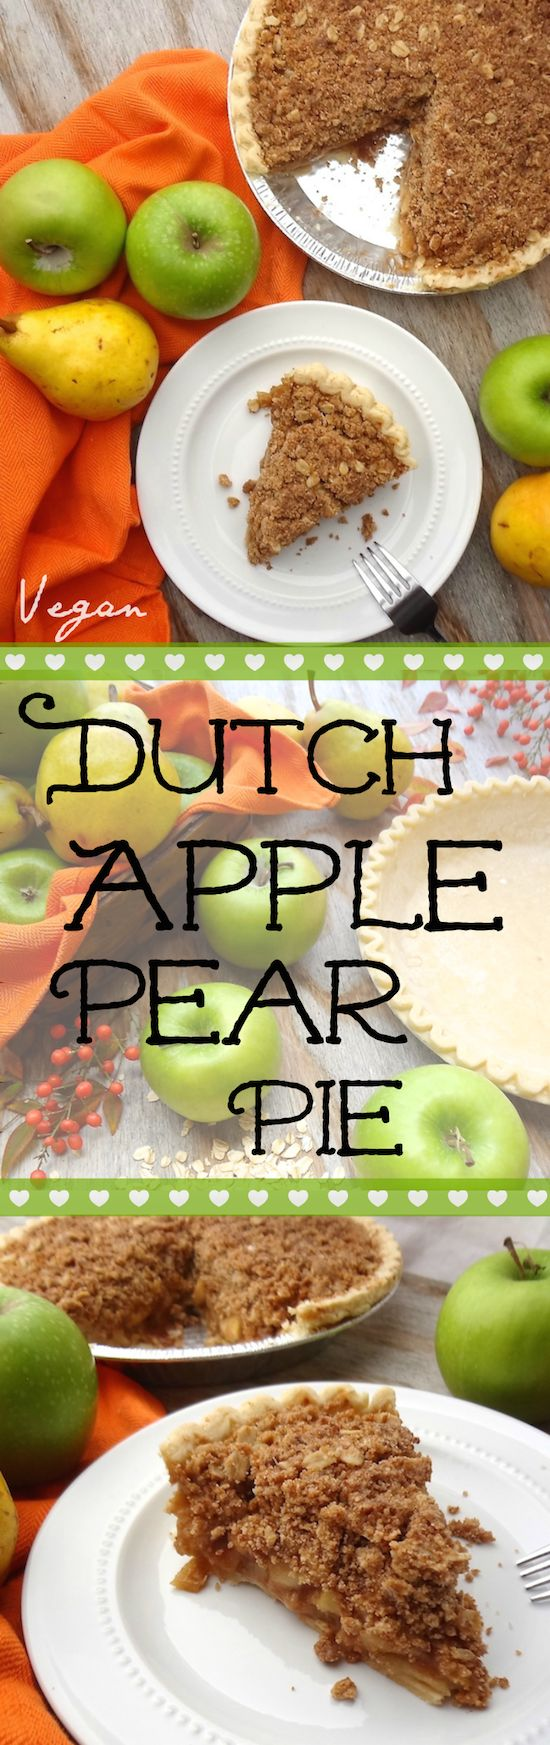 Vegan Dutch Apple-Pear Pie made with 9 simple ingredients and no refined sugar. – I could eat the whole pie myself, it's so good.  The sweet pears add another element to an otherwise, ordinary apple pie.